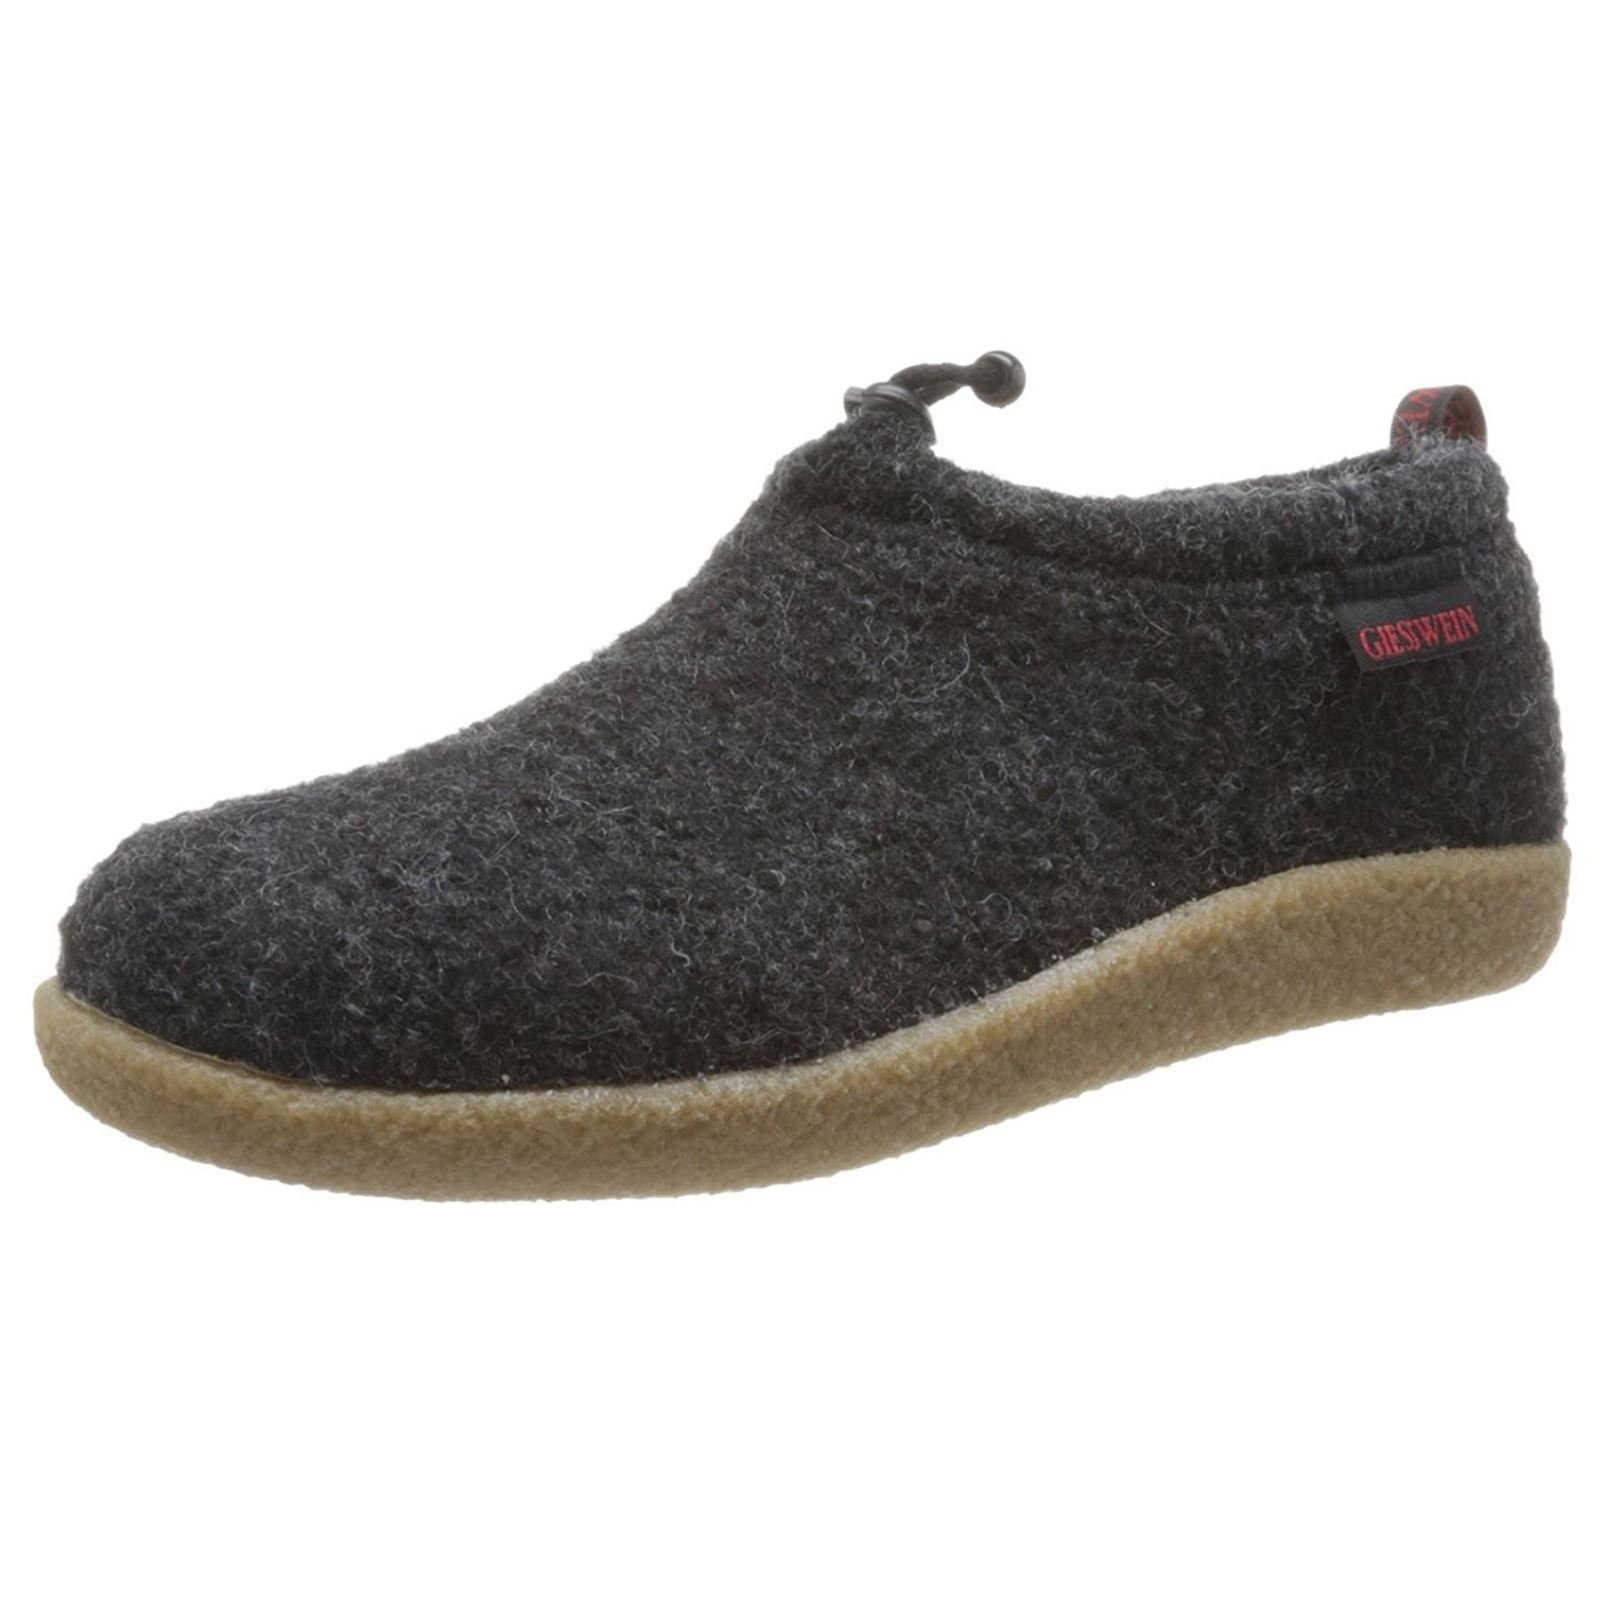 Giesswein Mens Vent Anthracite Wool Shoes 42 EU